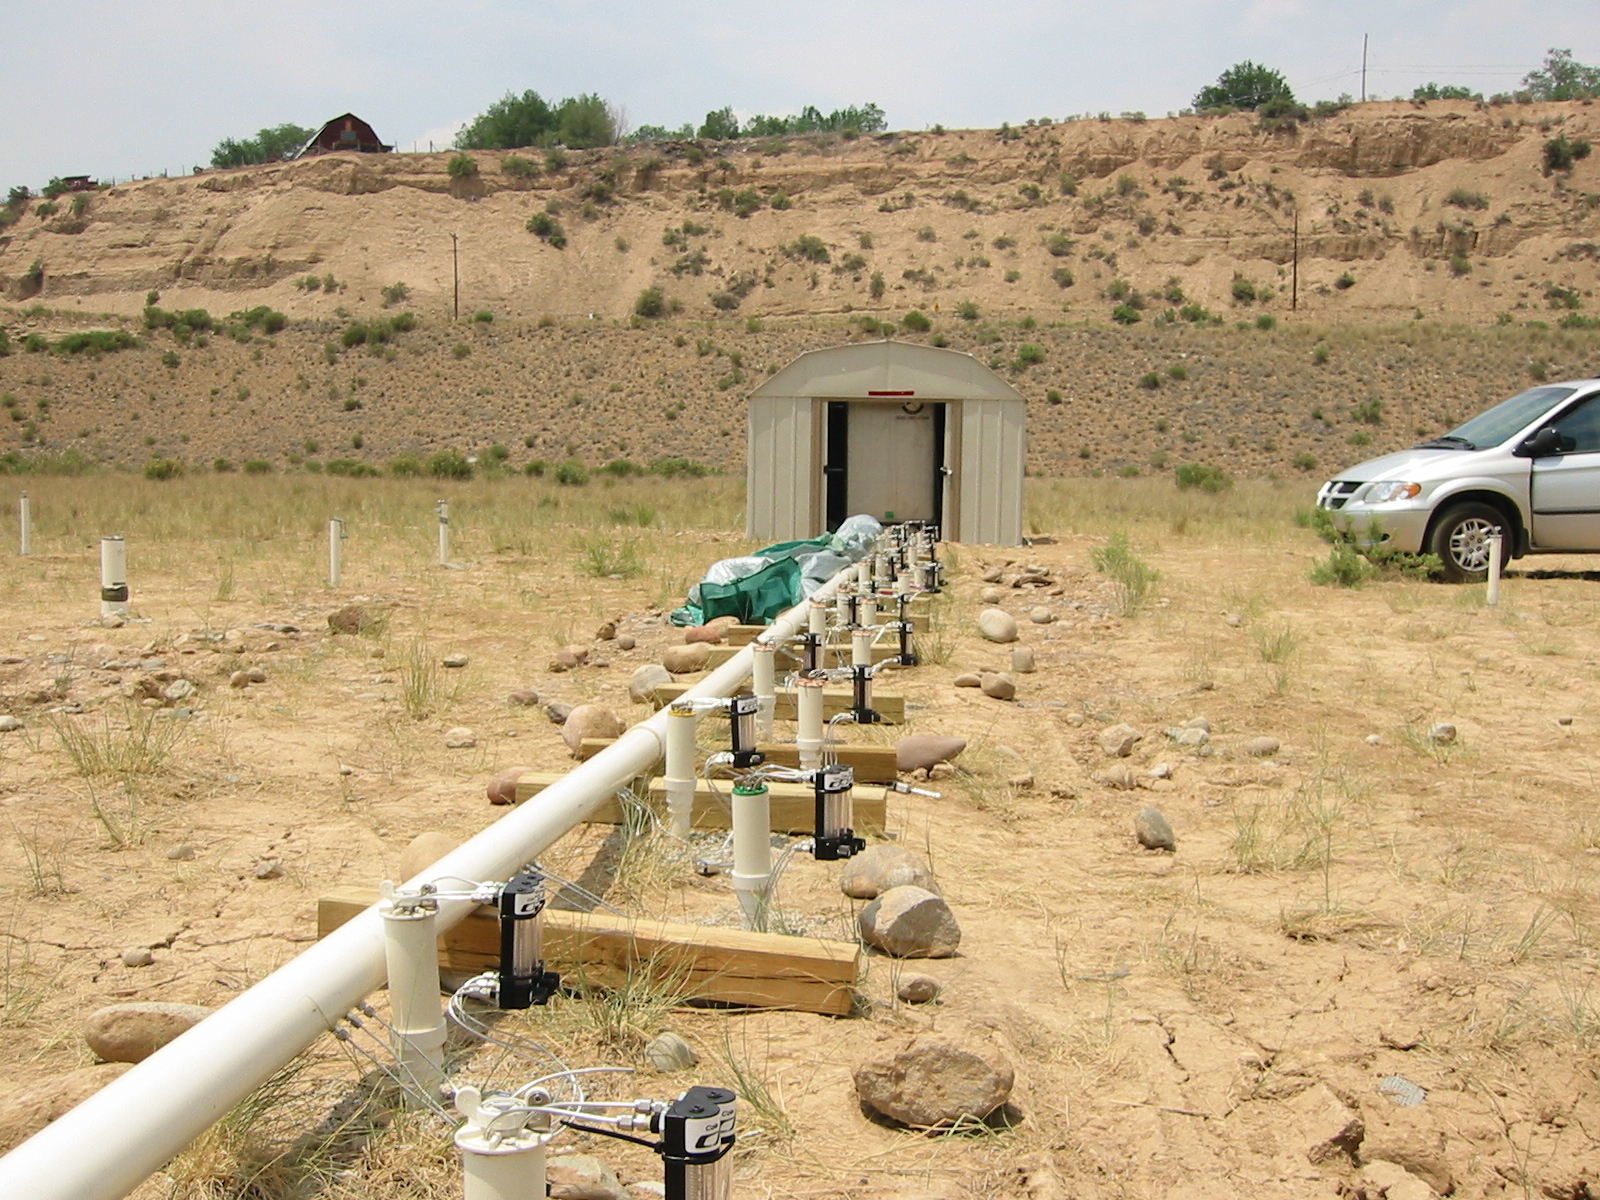 x ray techniques are being used to target long lived groundwater contamination at former uranium ore processing sites in the floodplains of the upper